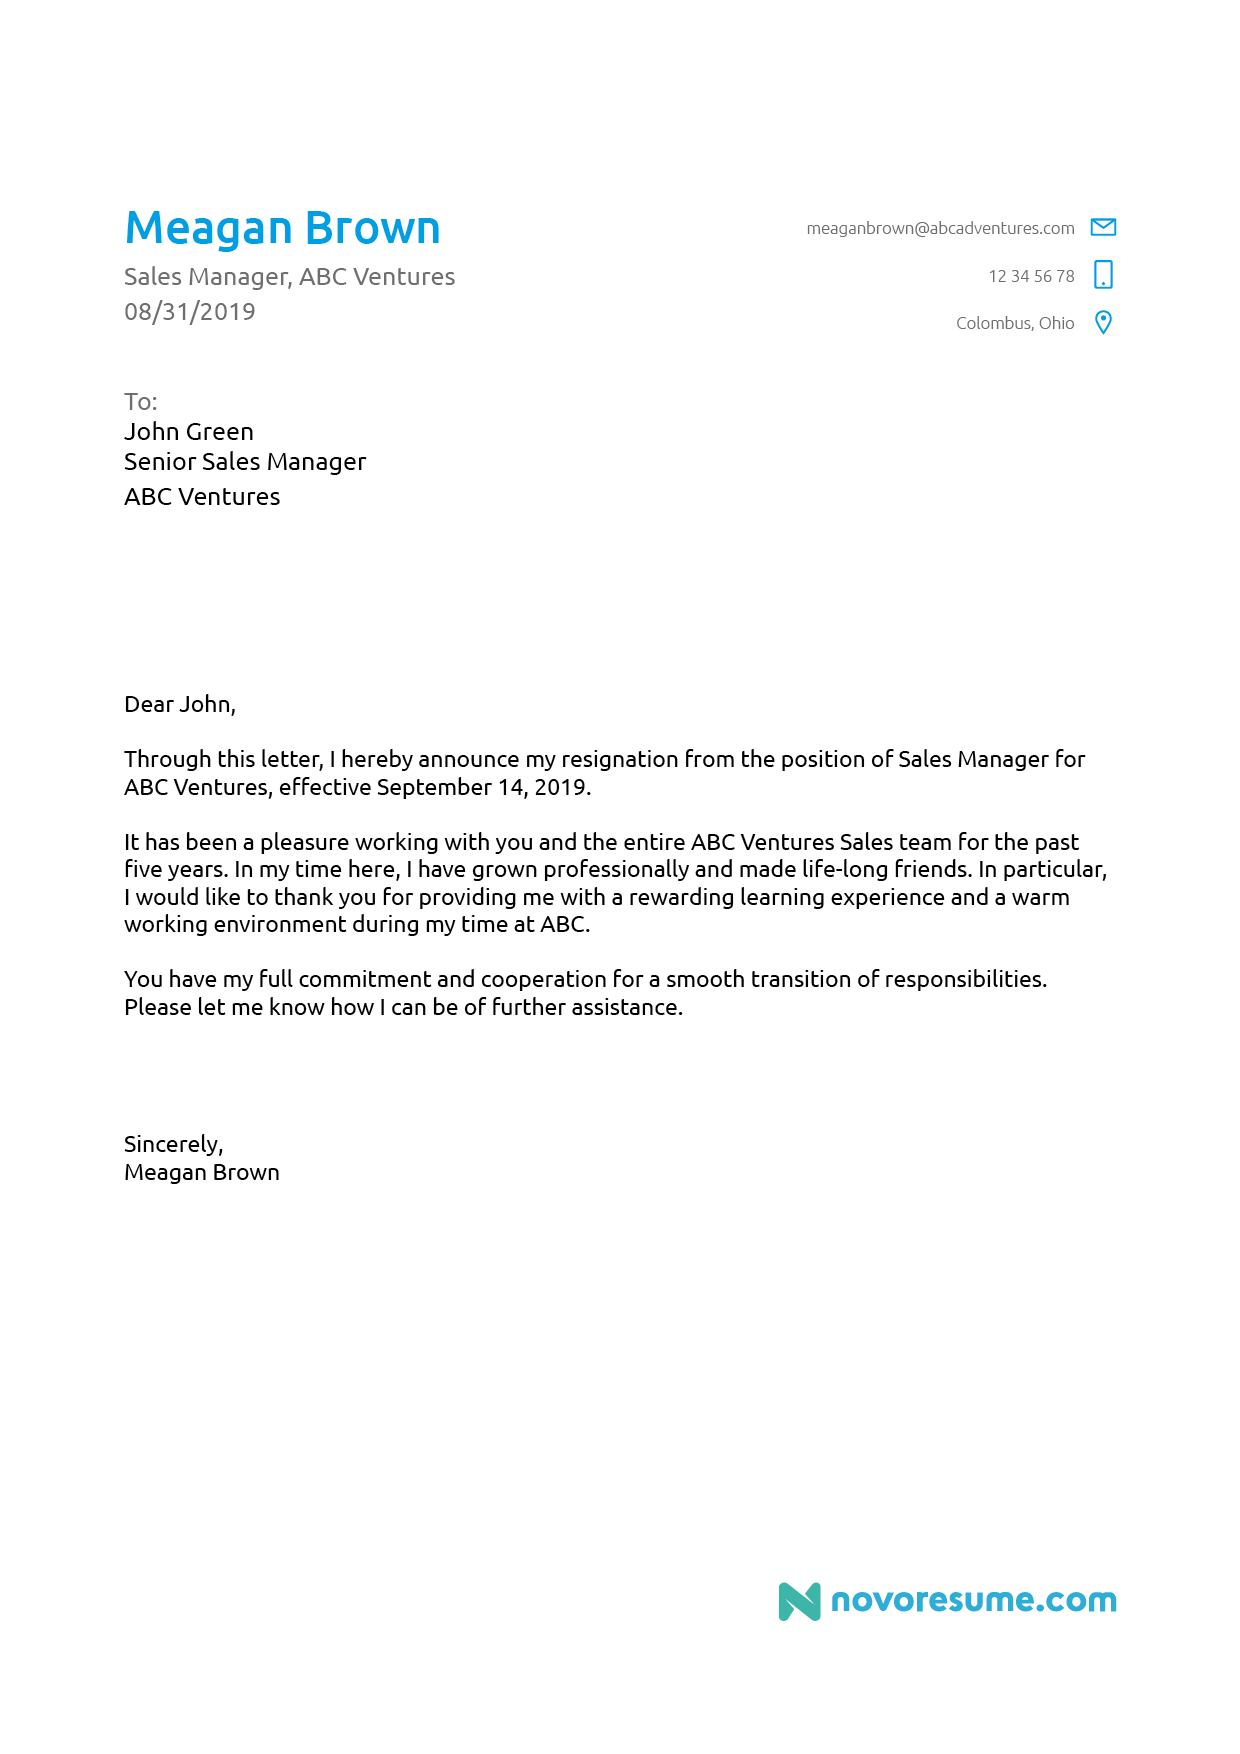 resignation letter template for board of directors  5+ Letter of Resignation Templates [Download Now] - resignation letter template for board of directors